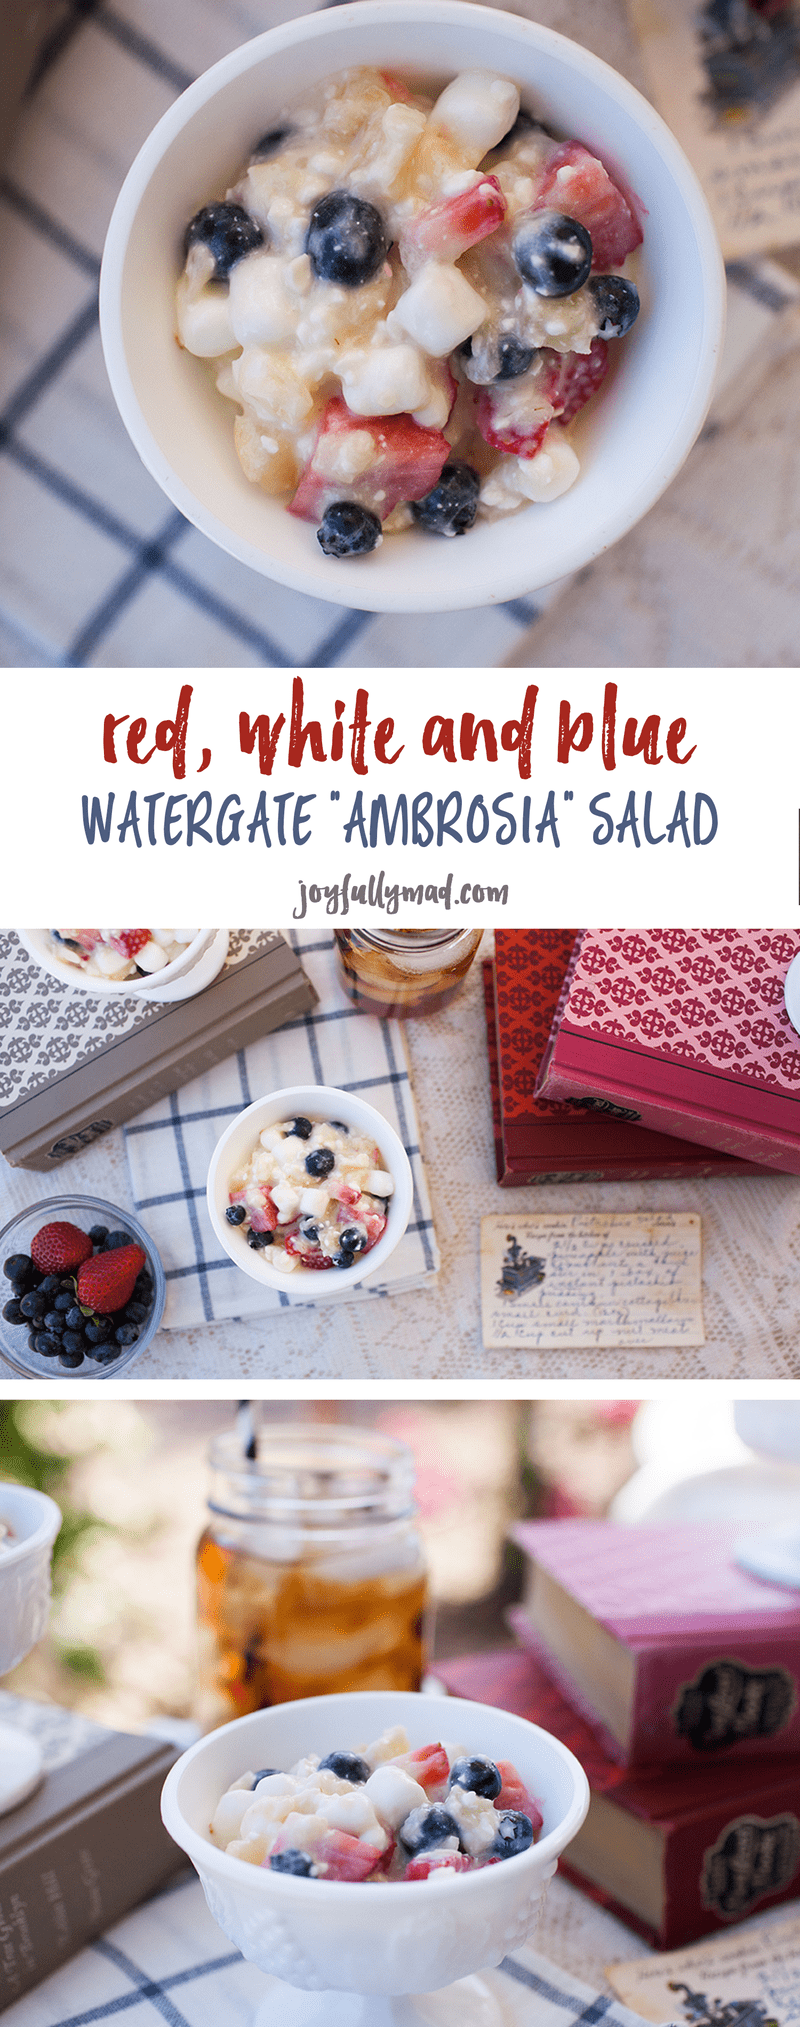 This new spin on a traditional pistachio salad recipe makes the perfect Memorial Day or 4th of July treat! Check out this Red, White & Blue Watergate Ambrosia Salad recipe!